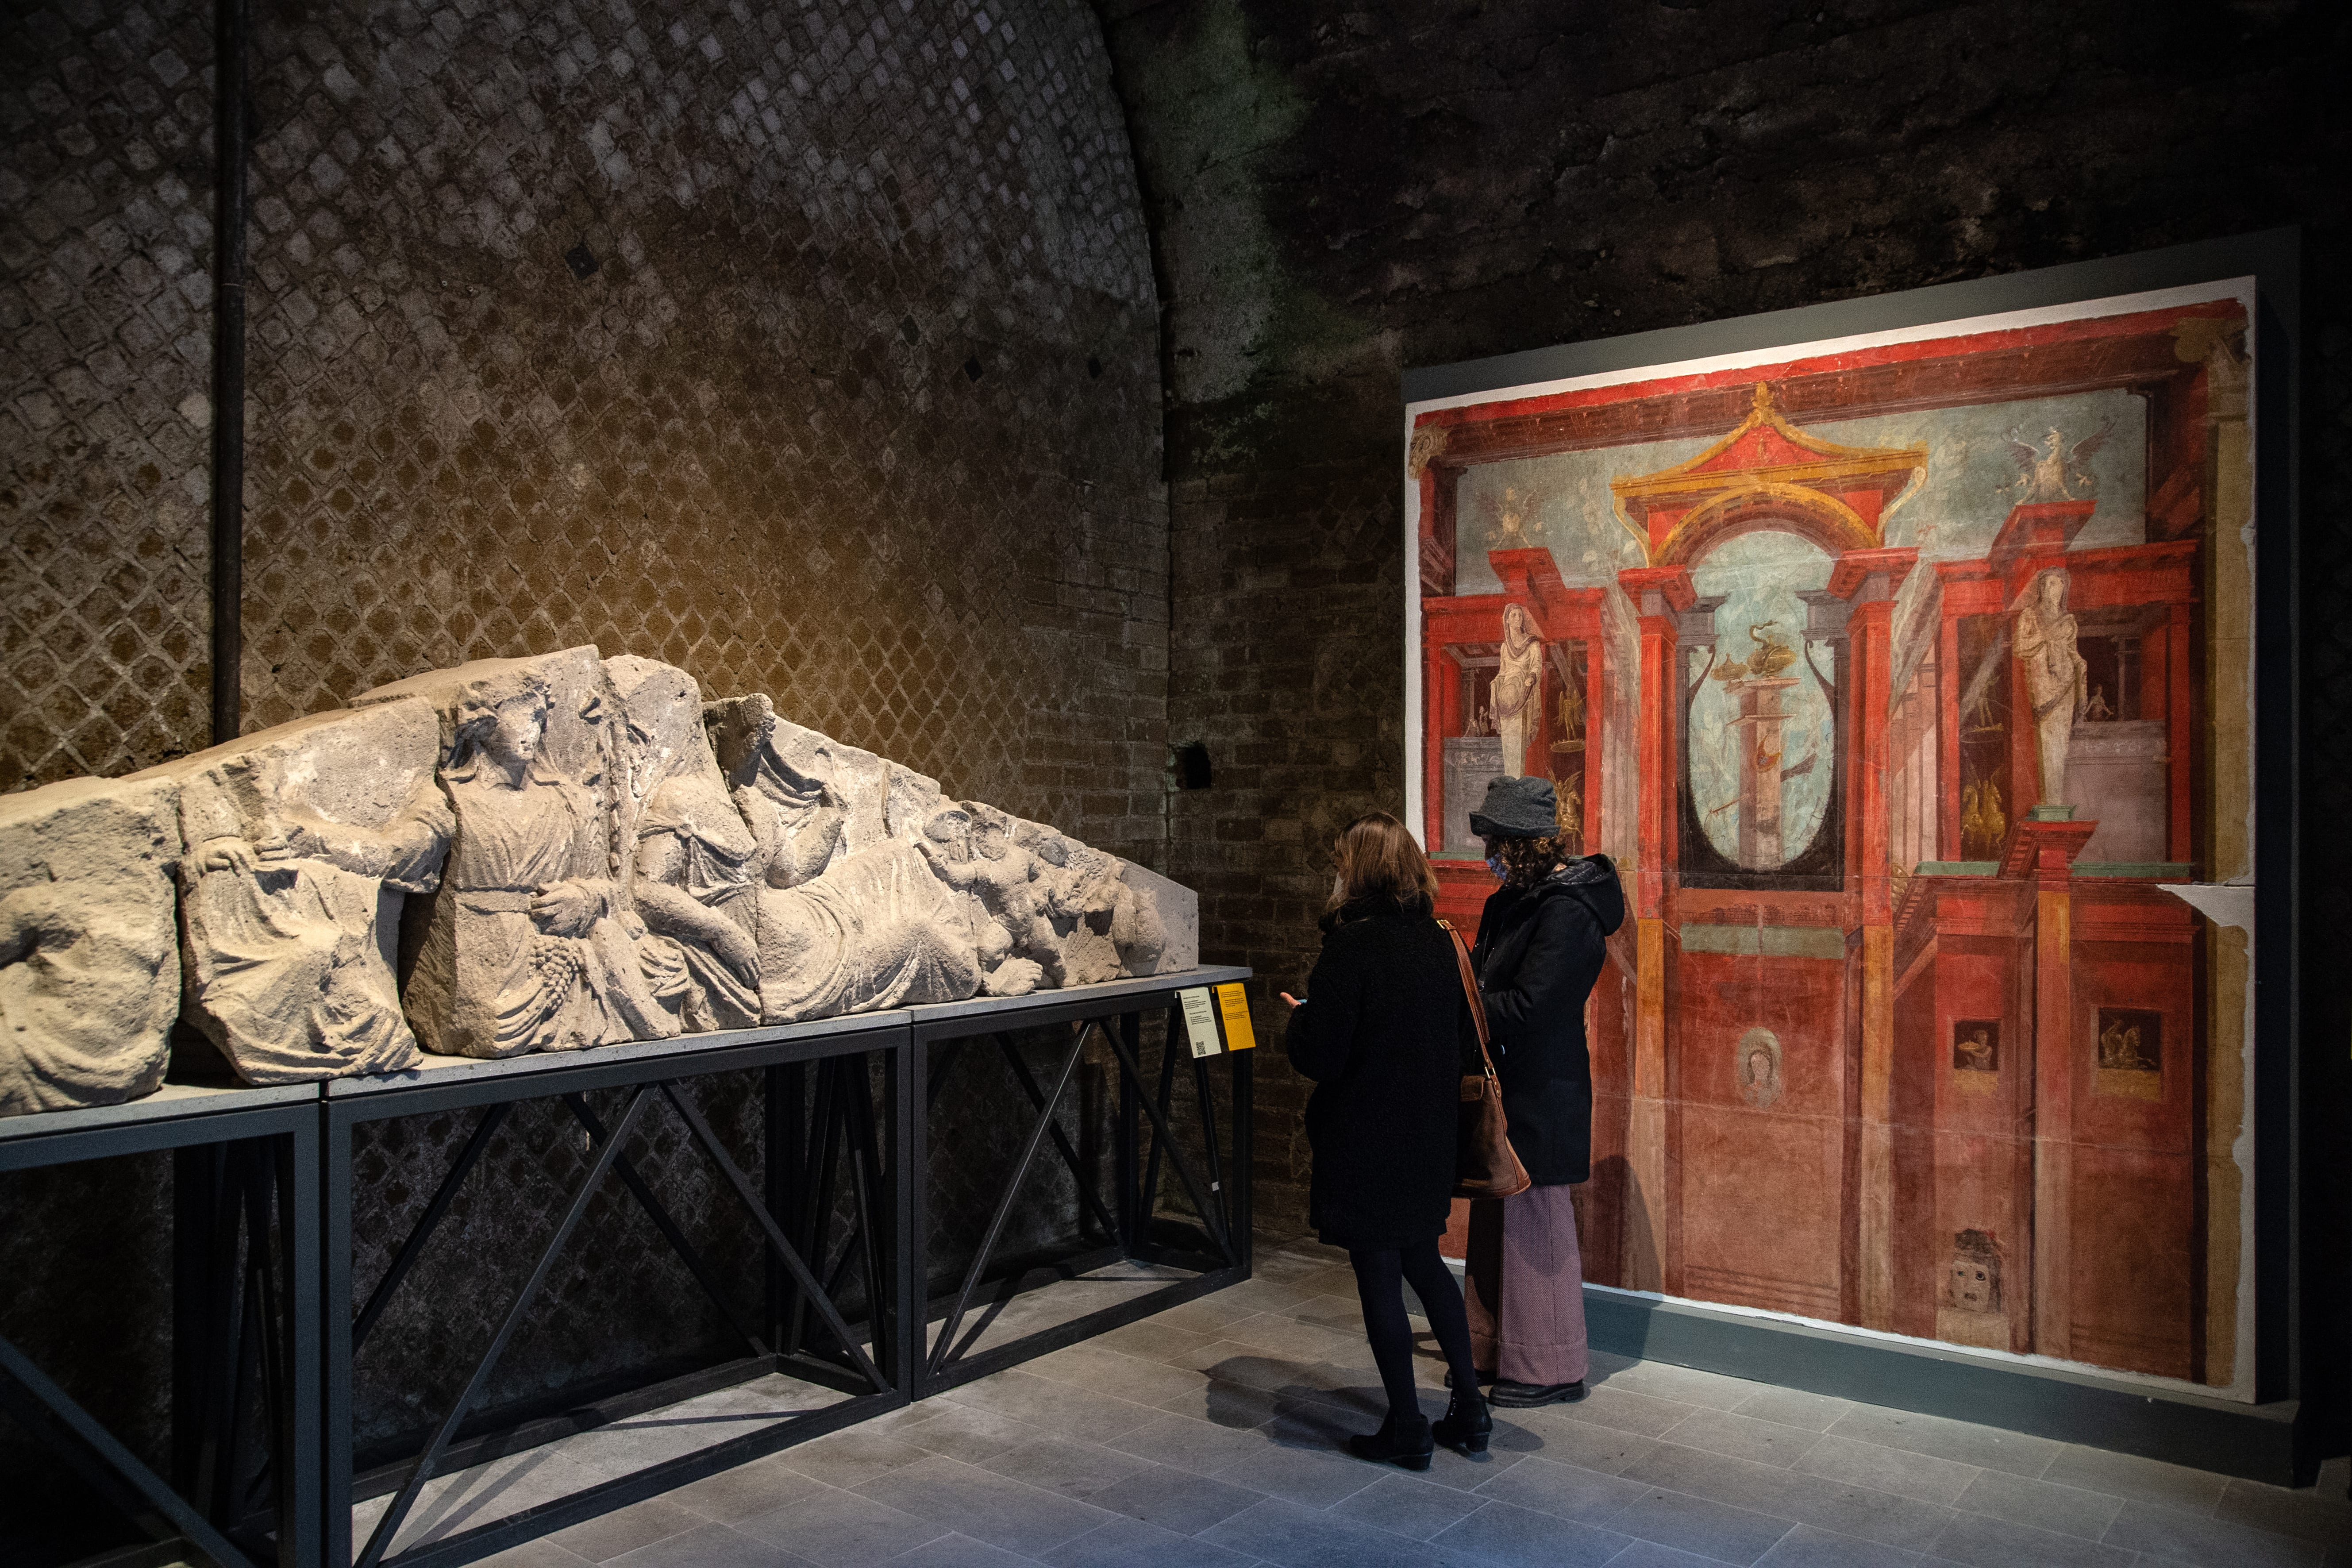 Visitors to the Pompeii Museum Can Expect Casts of Victims and Ancient Graffiti